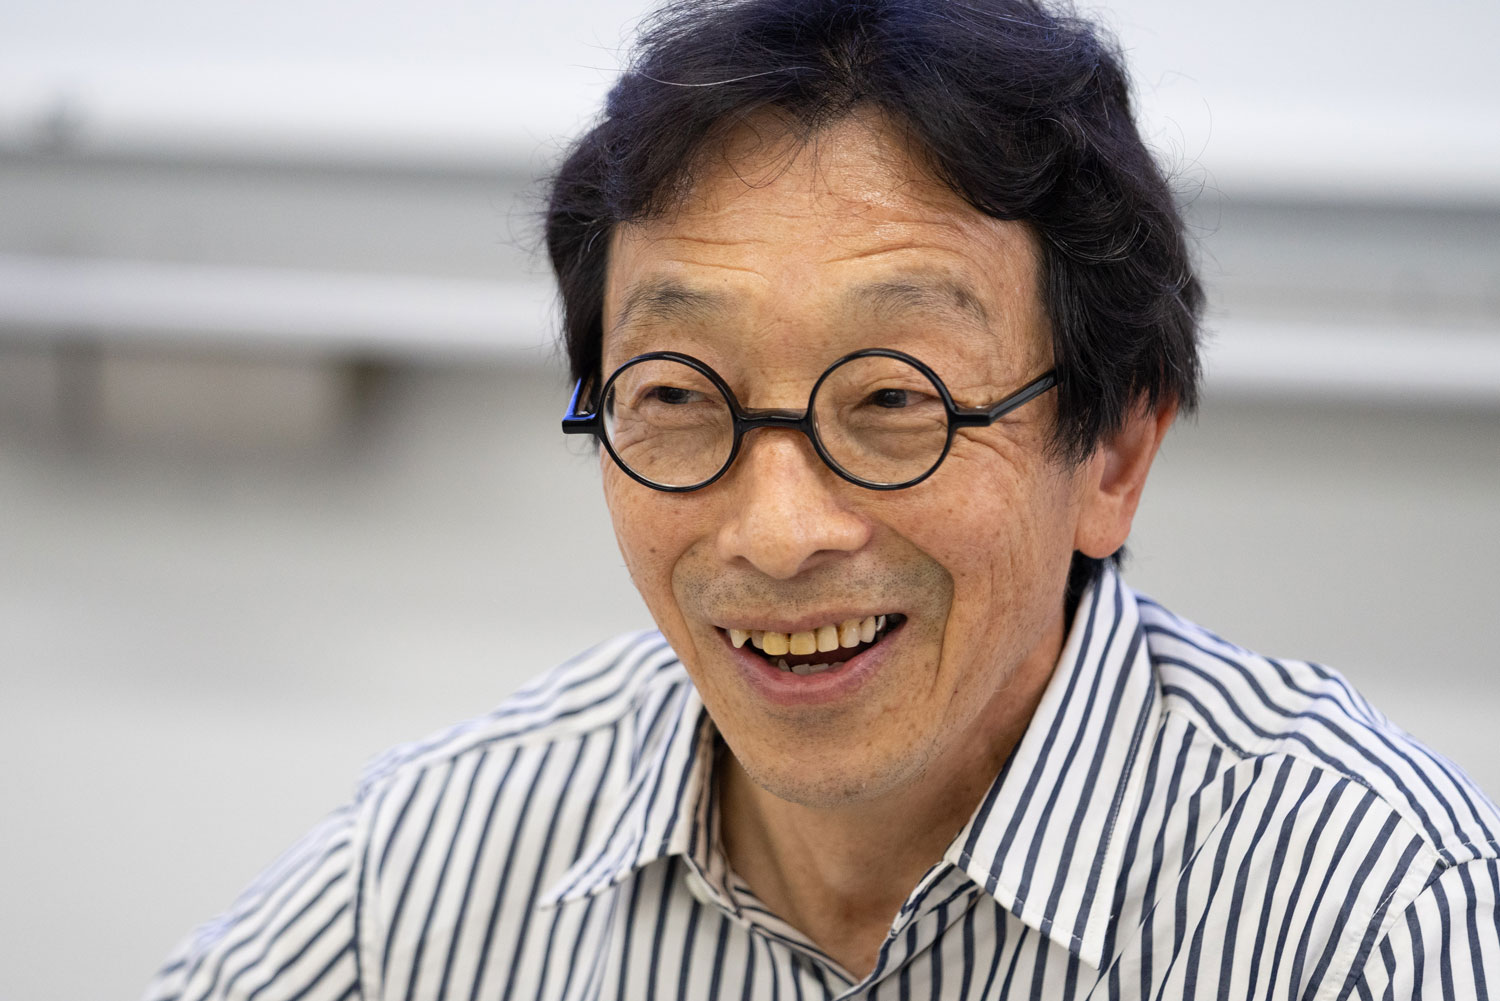 Mr Kikuo Ibe, inventor of the G-Shock